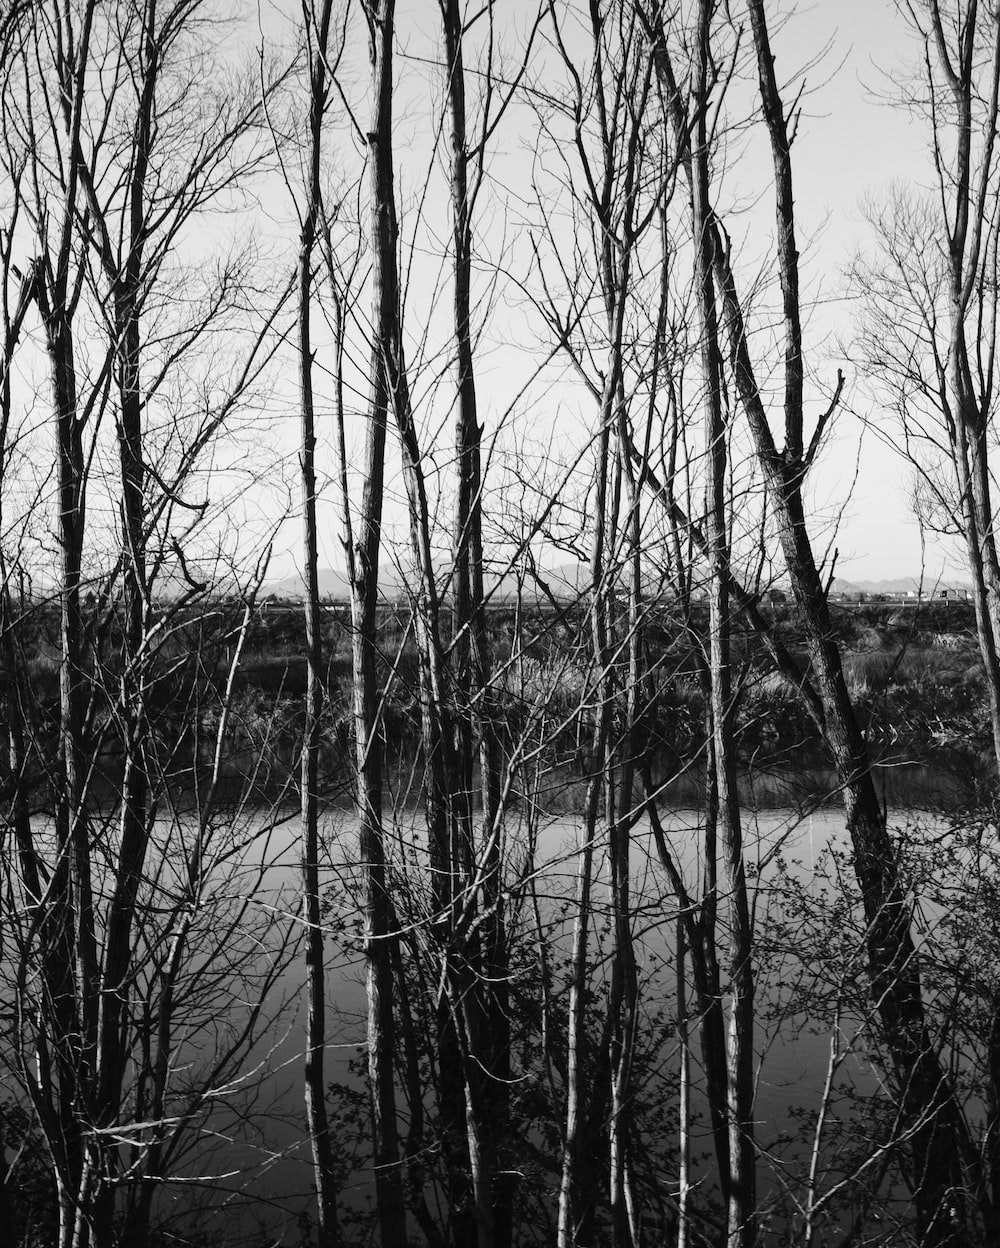 grayscale photo of bare trees on body of water